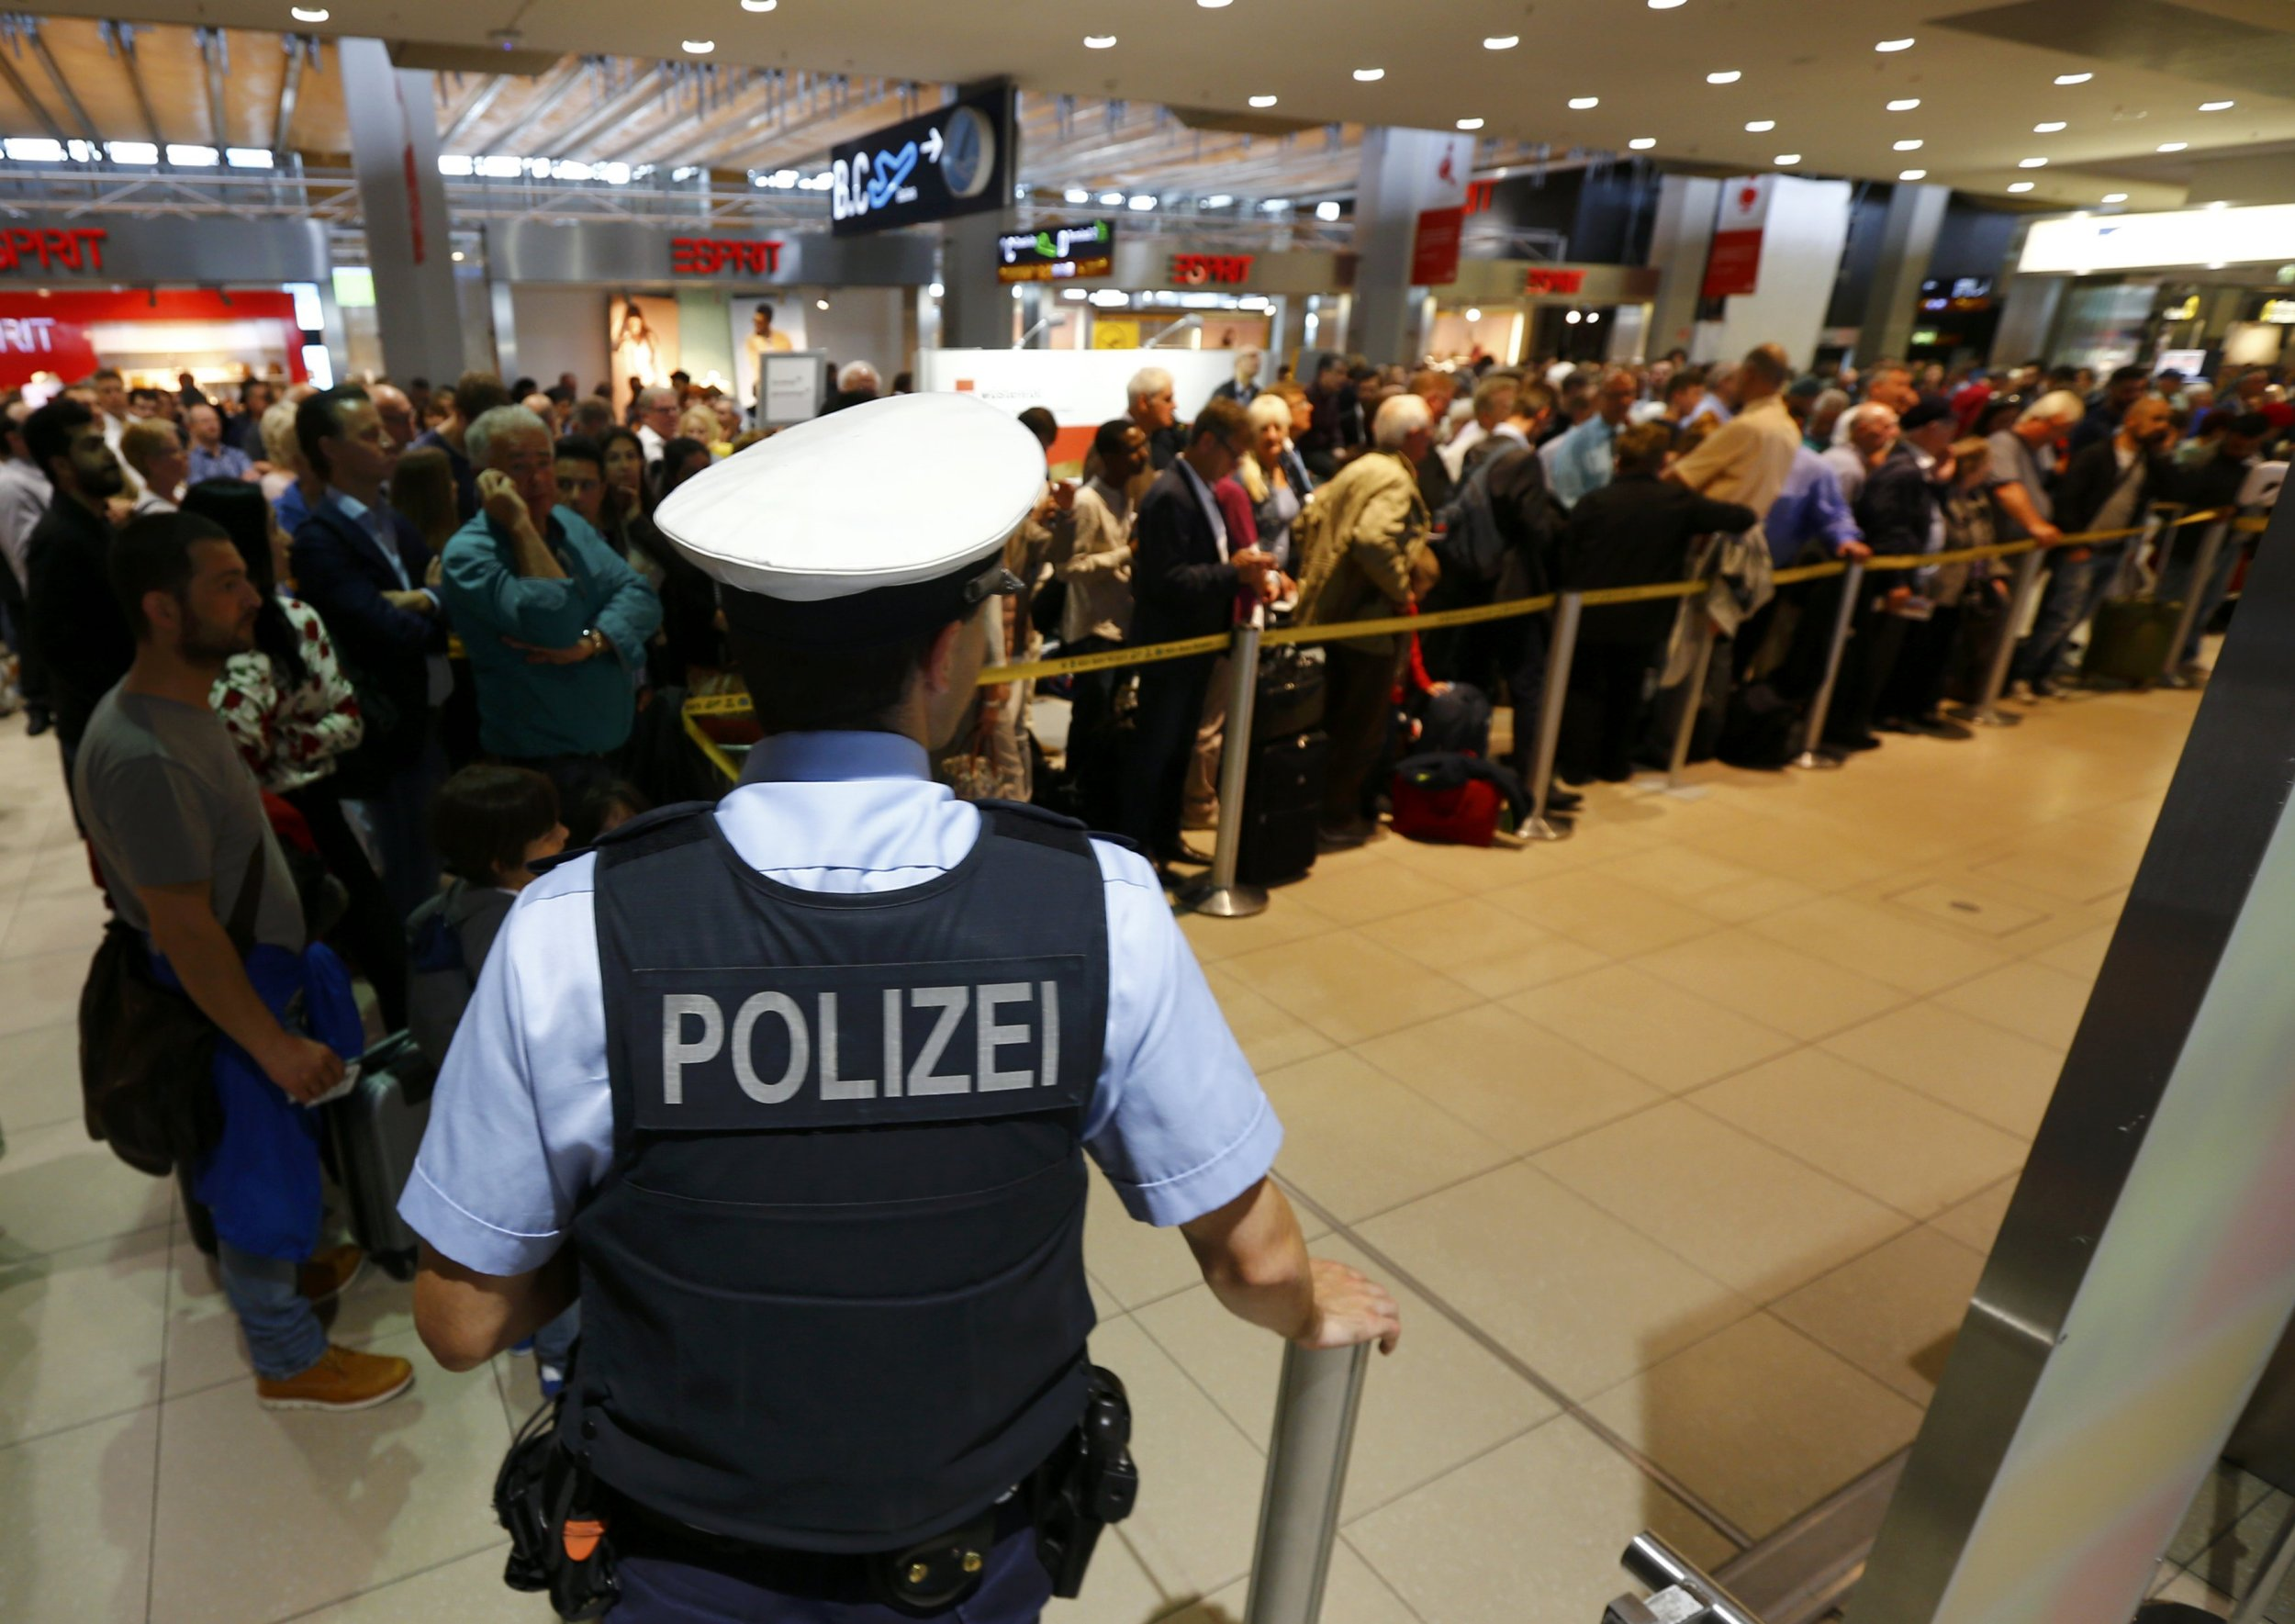 Flights grounded at Cologne airport after 'man breaches security'